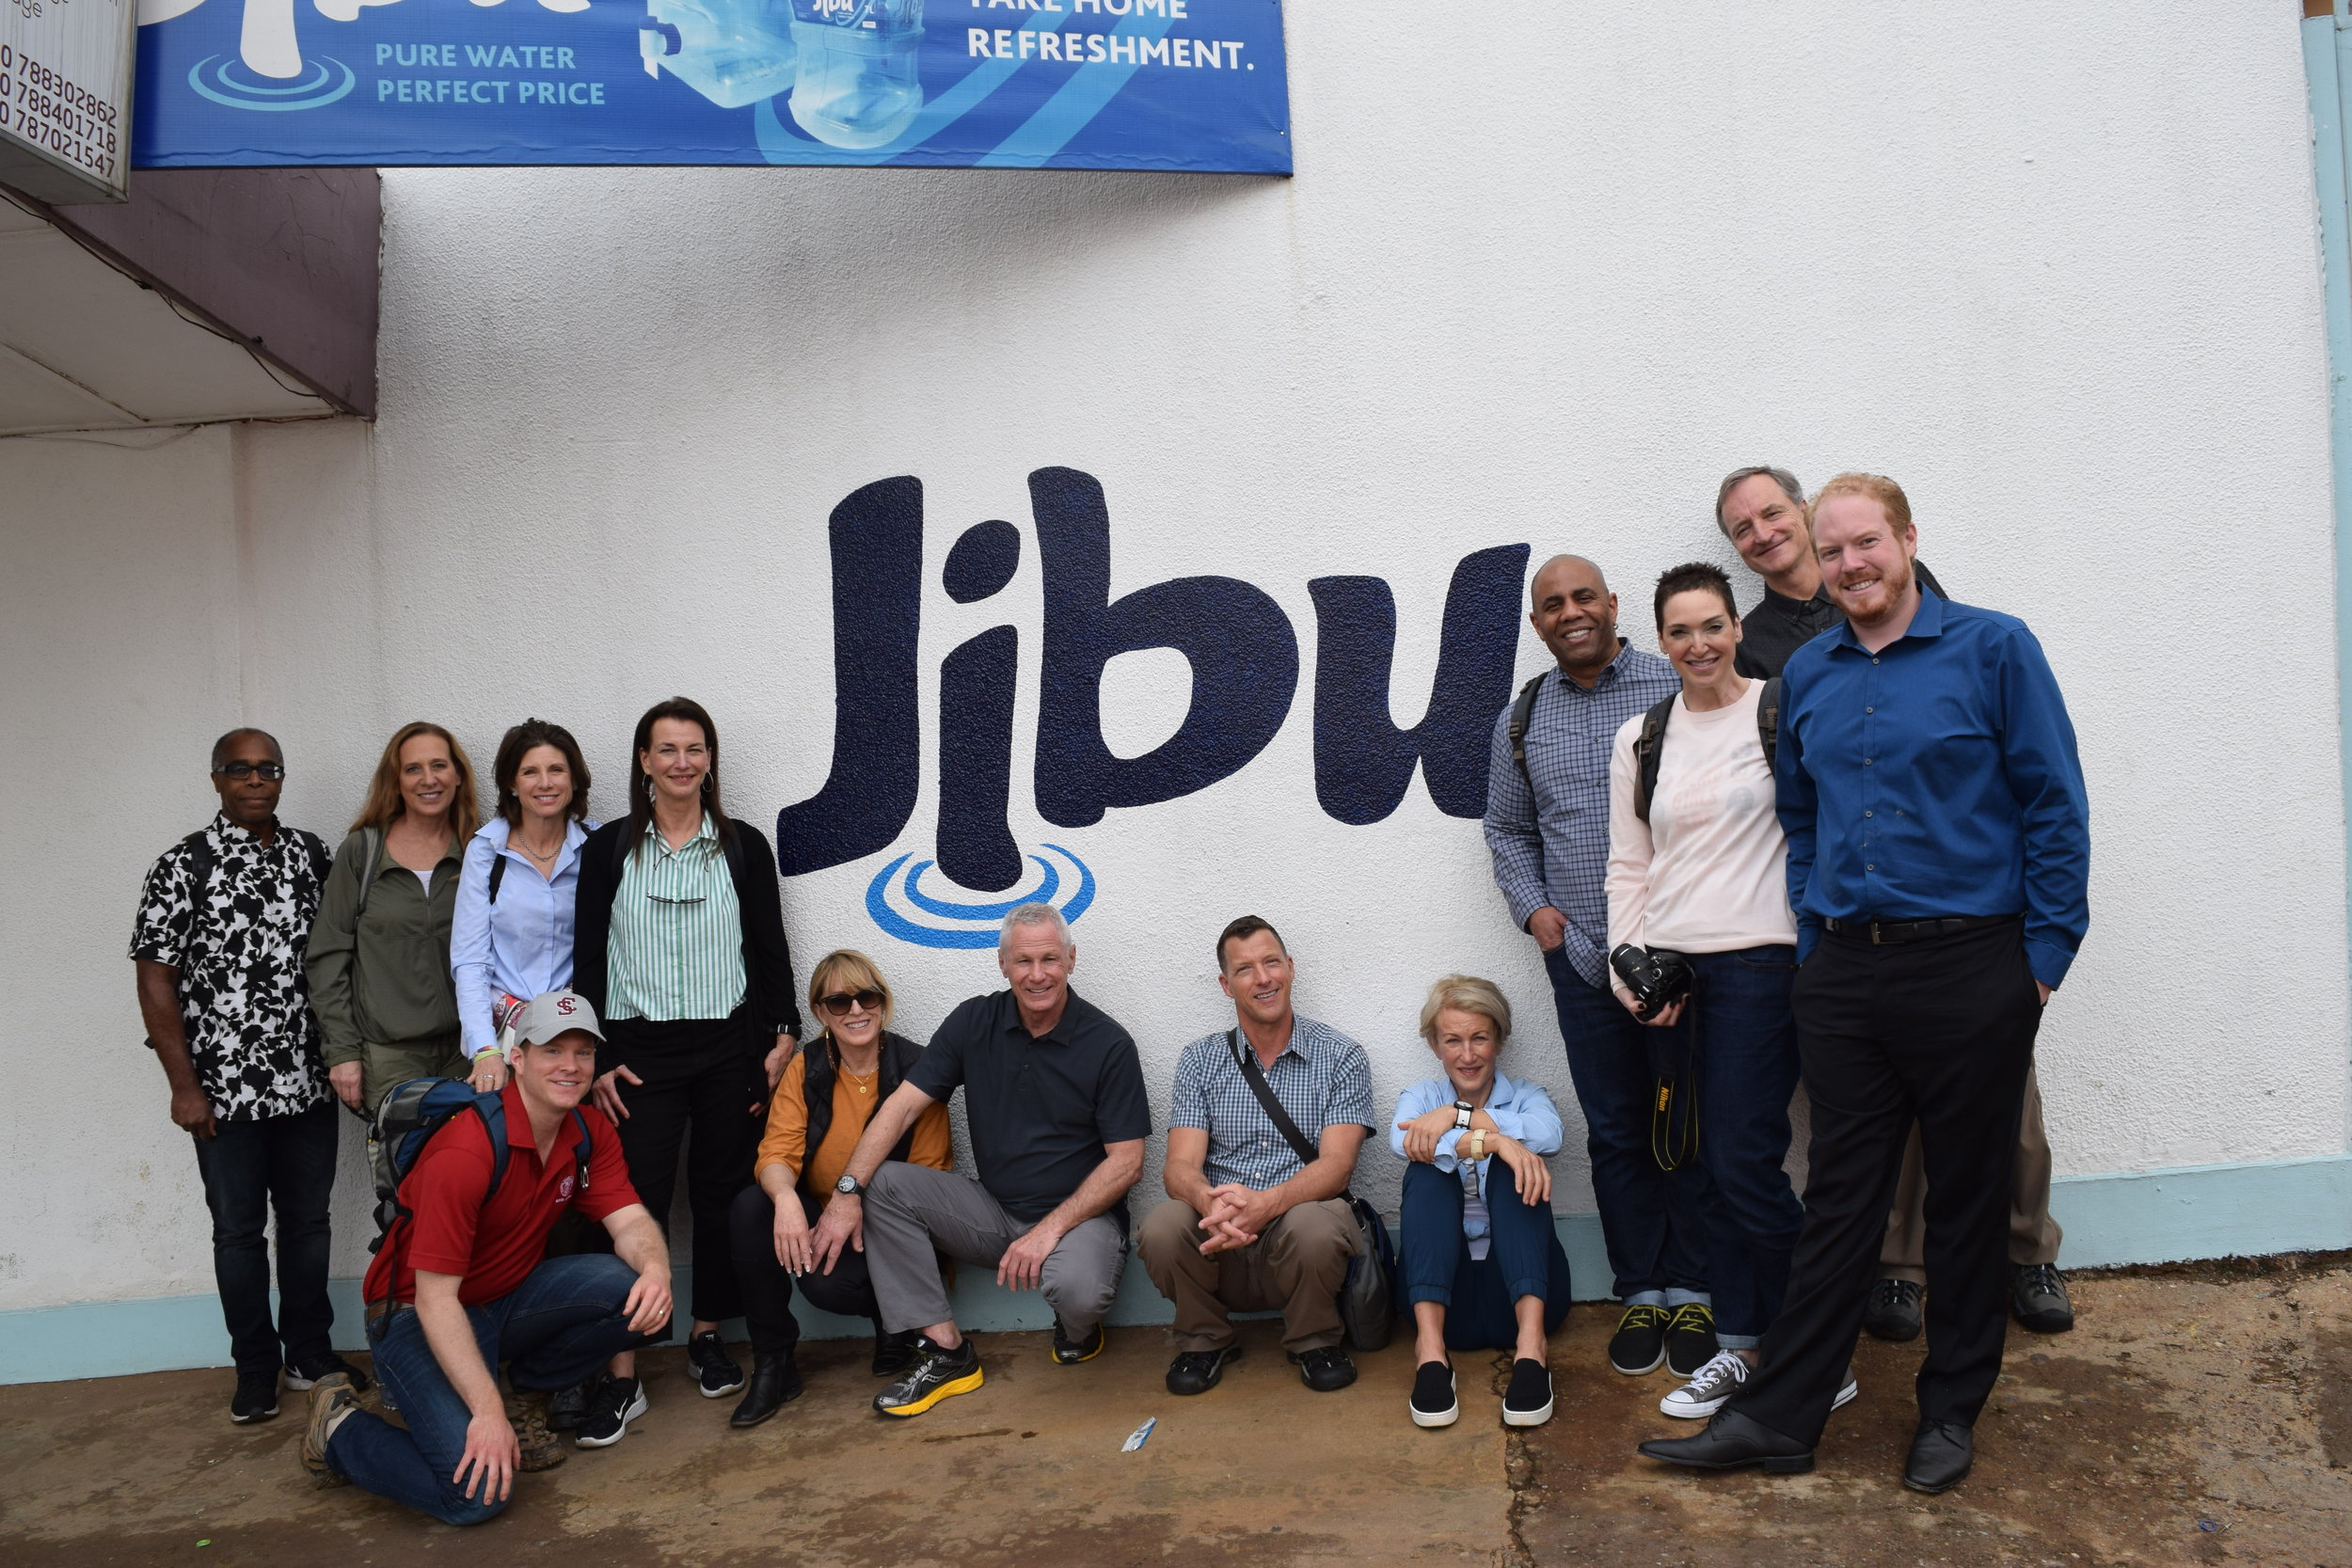 Miller Center executive immersion trip participants at Jibu's headquarters in Kigali with Rwanda country manager Nathan Dowling.